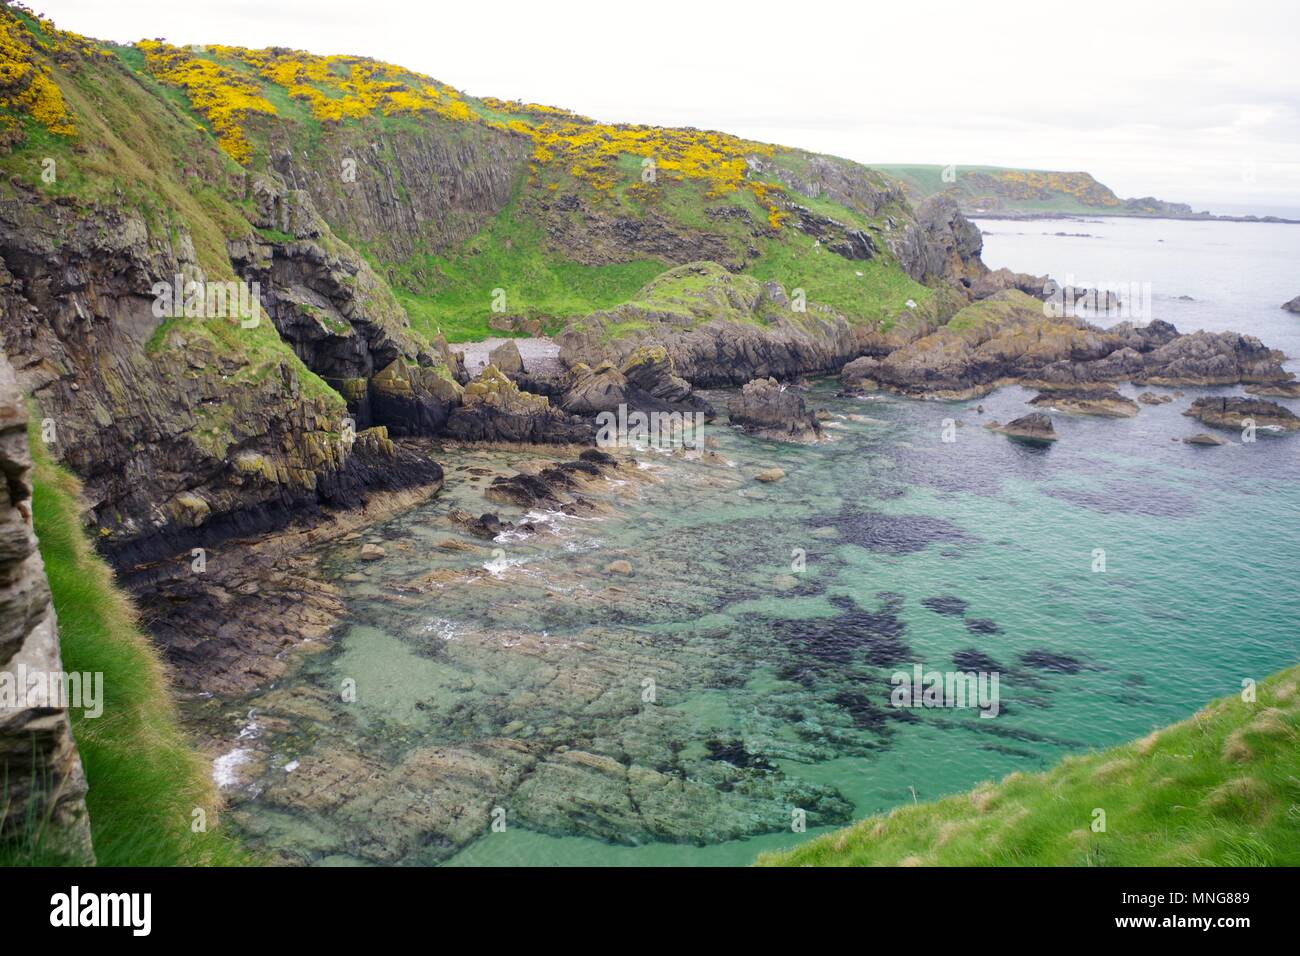 Inviting Turquoise Water of the Rugged Coast by Findlater Castle, Sandend, Scotland, UK. - Stock Image